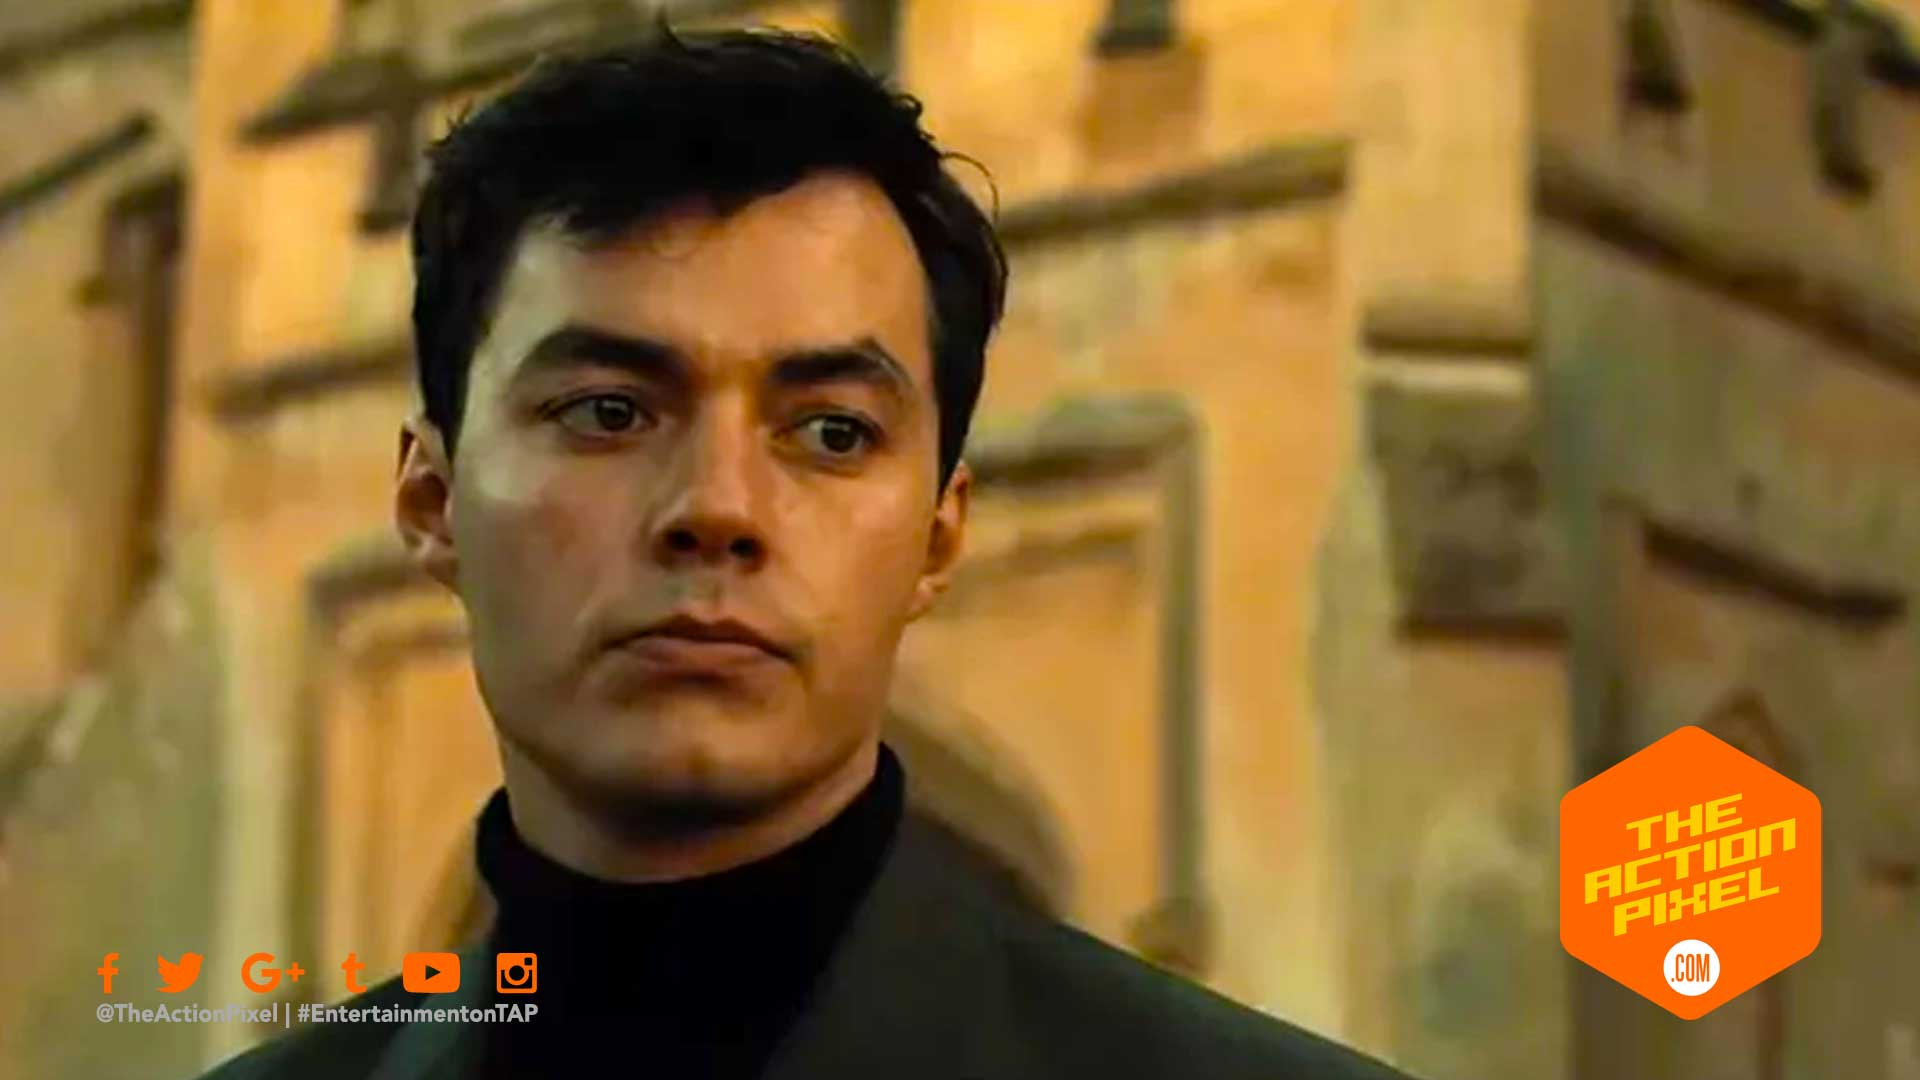 pennyworth, alfred pennyworth , epix, dc comics, dc, prequel, batman prequel, batman, dc, pennyworth season 1, pennyworth season 1 teaser, teaser trailer, trailer, pennyworth season 1 trailer, pennyworth trailer,the action pixel, entertainment on tap, pennyworth, pennyworth dc comics, dc comics, the action pixel,featured